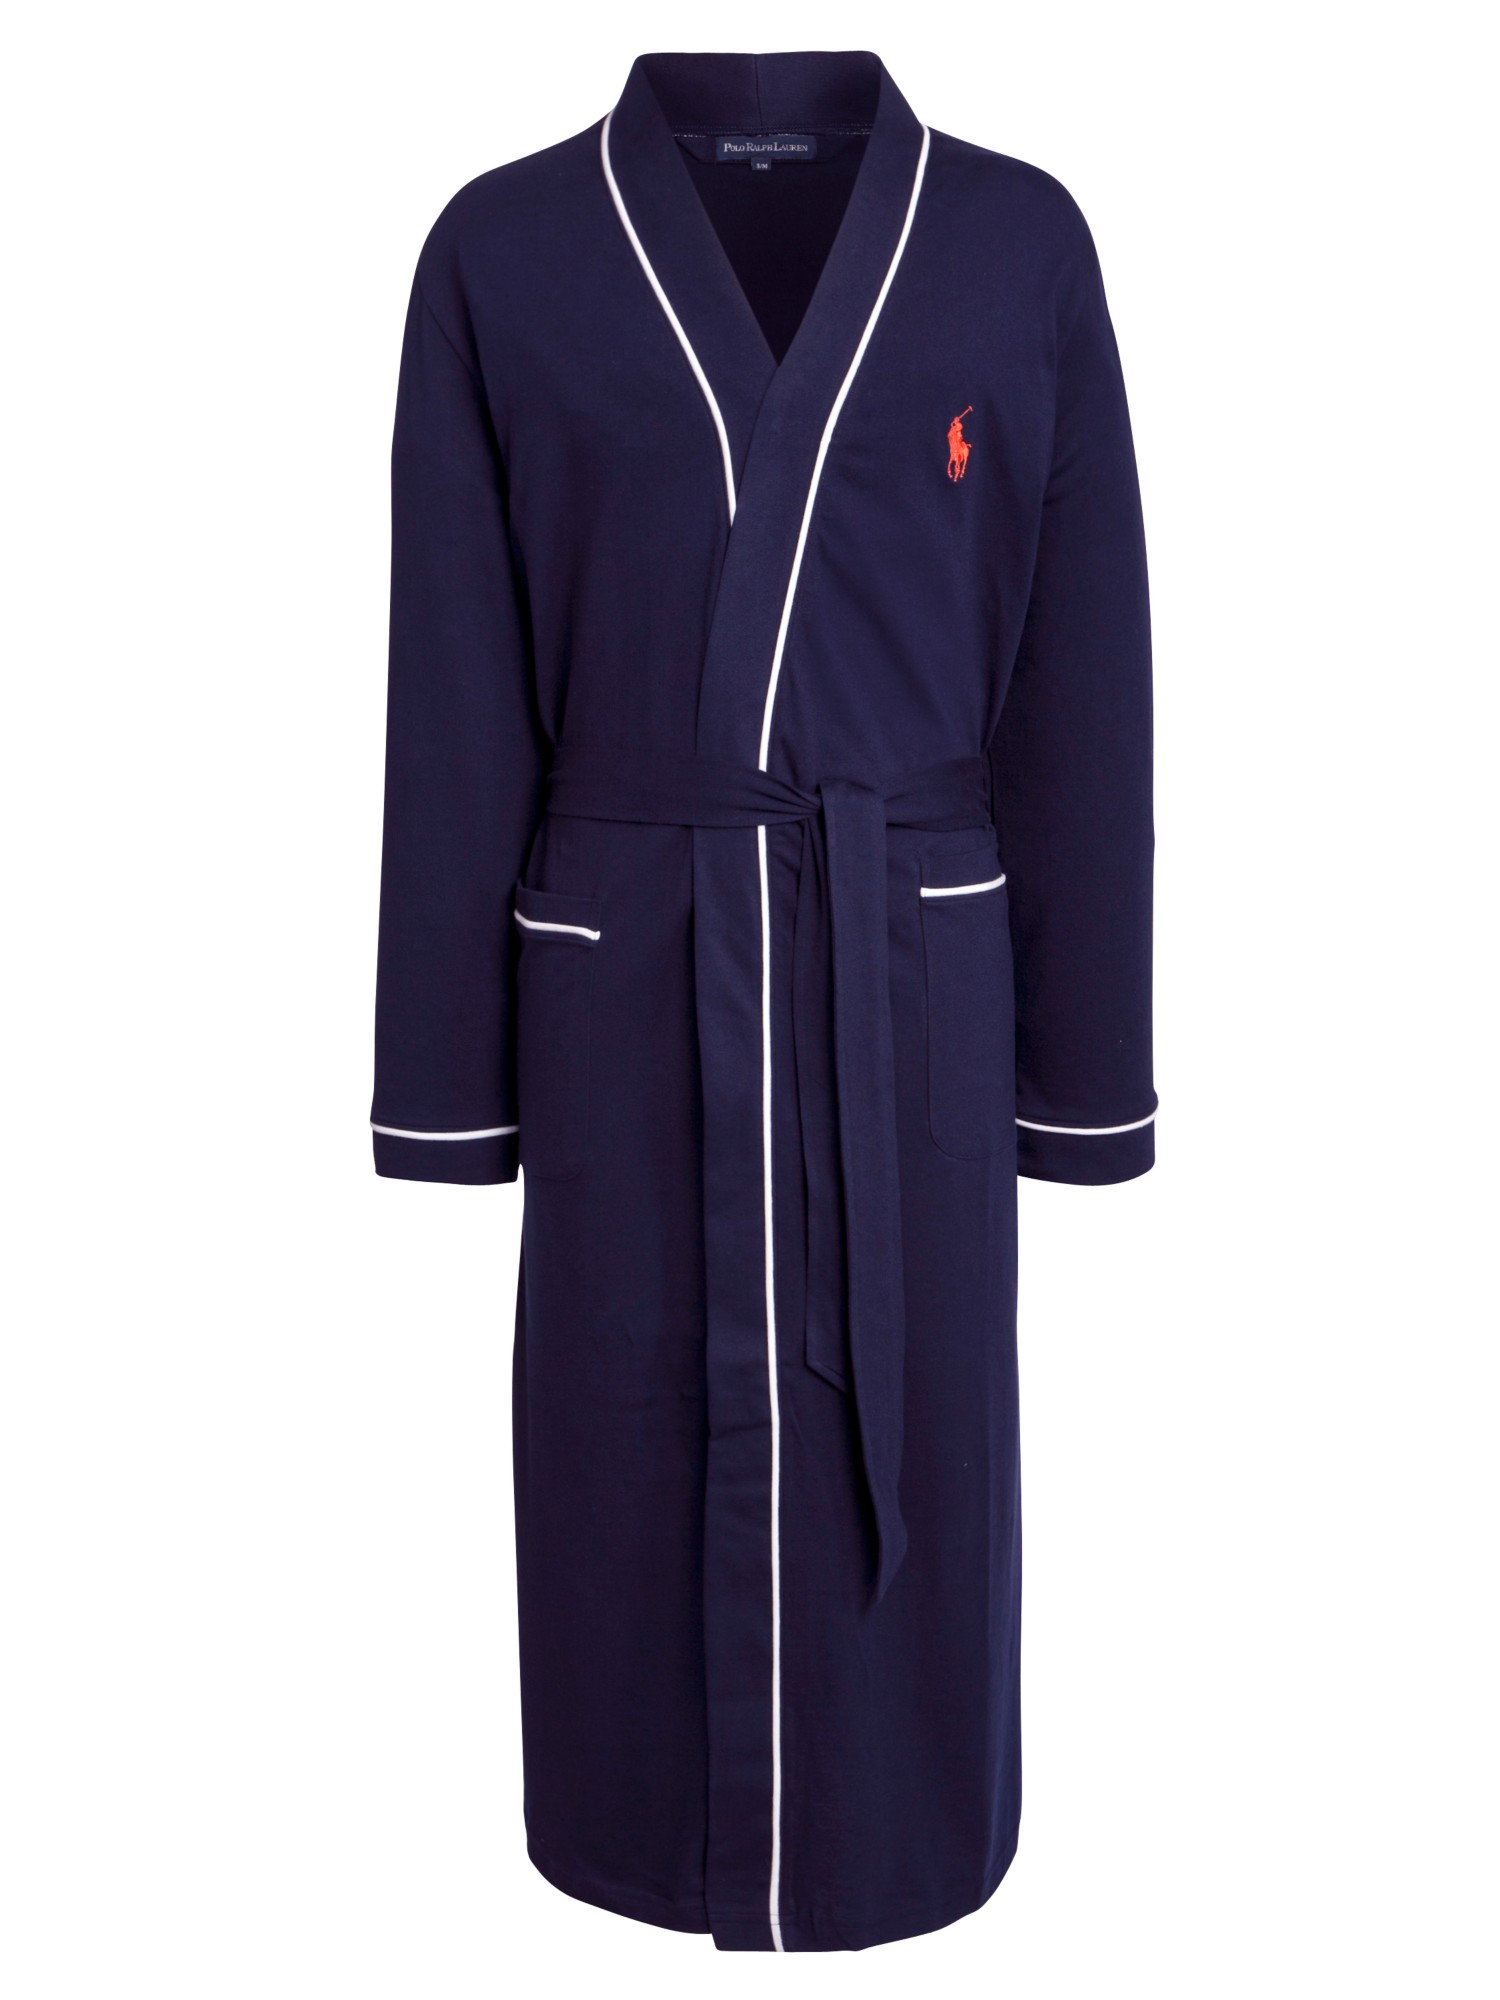 polo ralph lauren cotton jersey piped dressing gown in blue for men. Black Bedroom Furniture Sets. Home Design Ideas